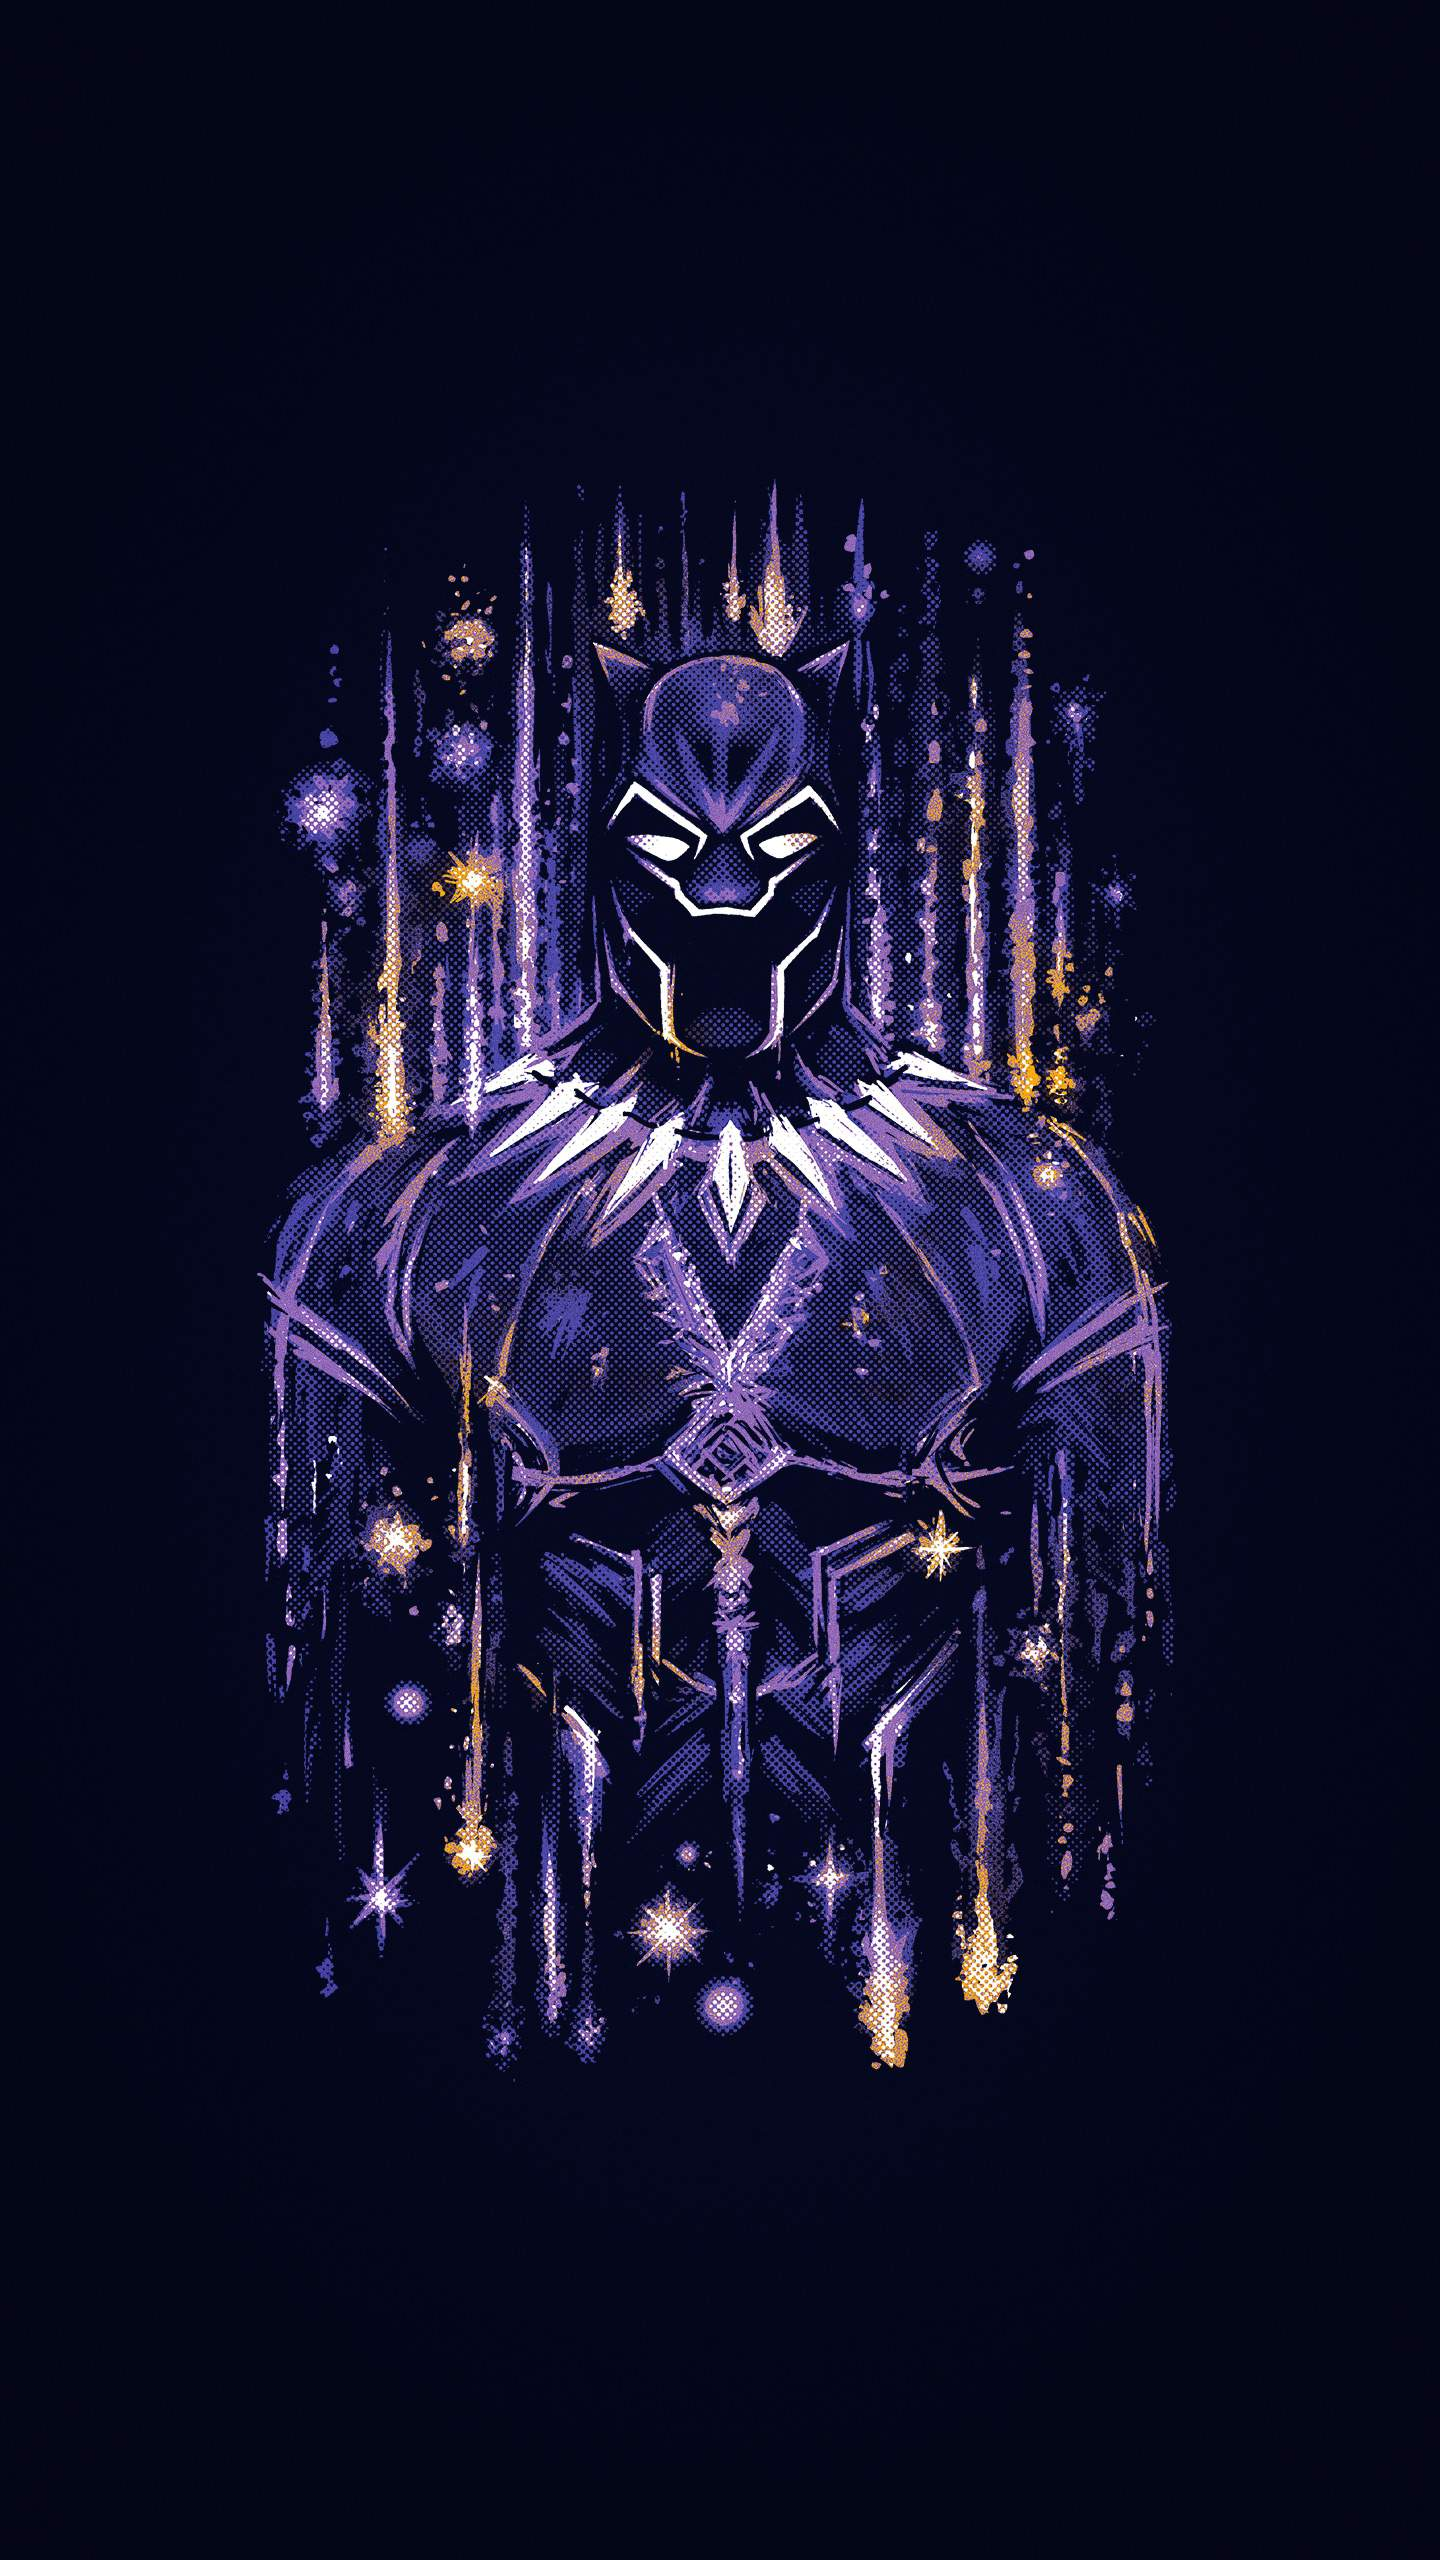 Wallpaper For Phone Quotes Black Panther Wakanda Artwork Iphone Wallpaper Iphone